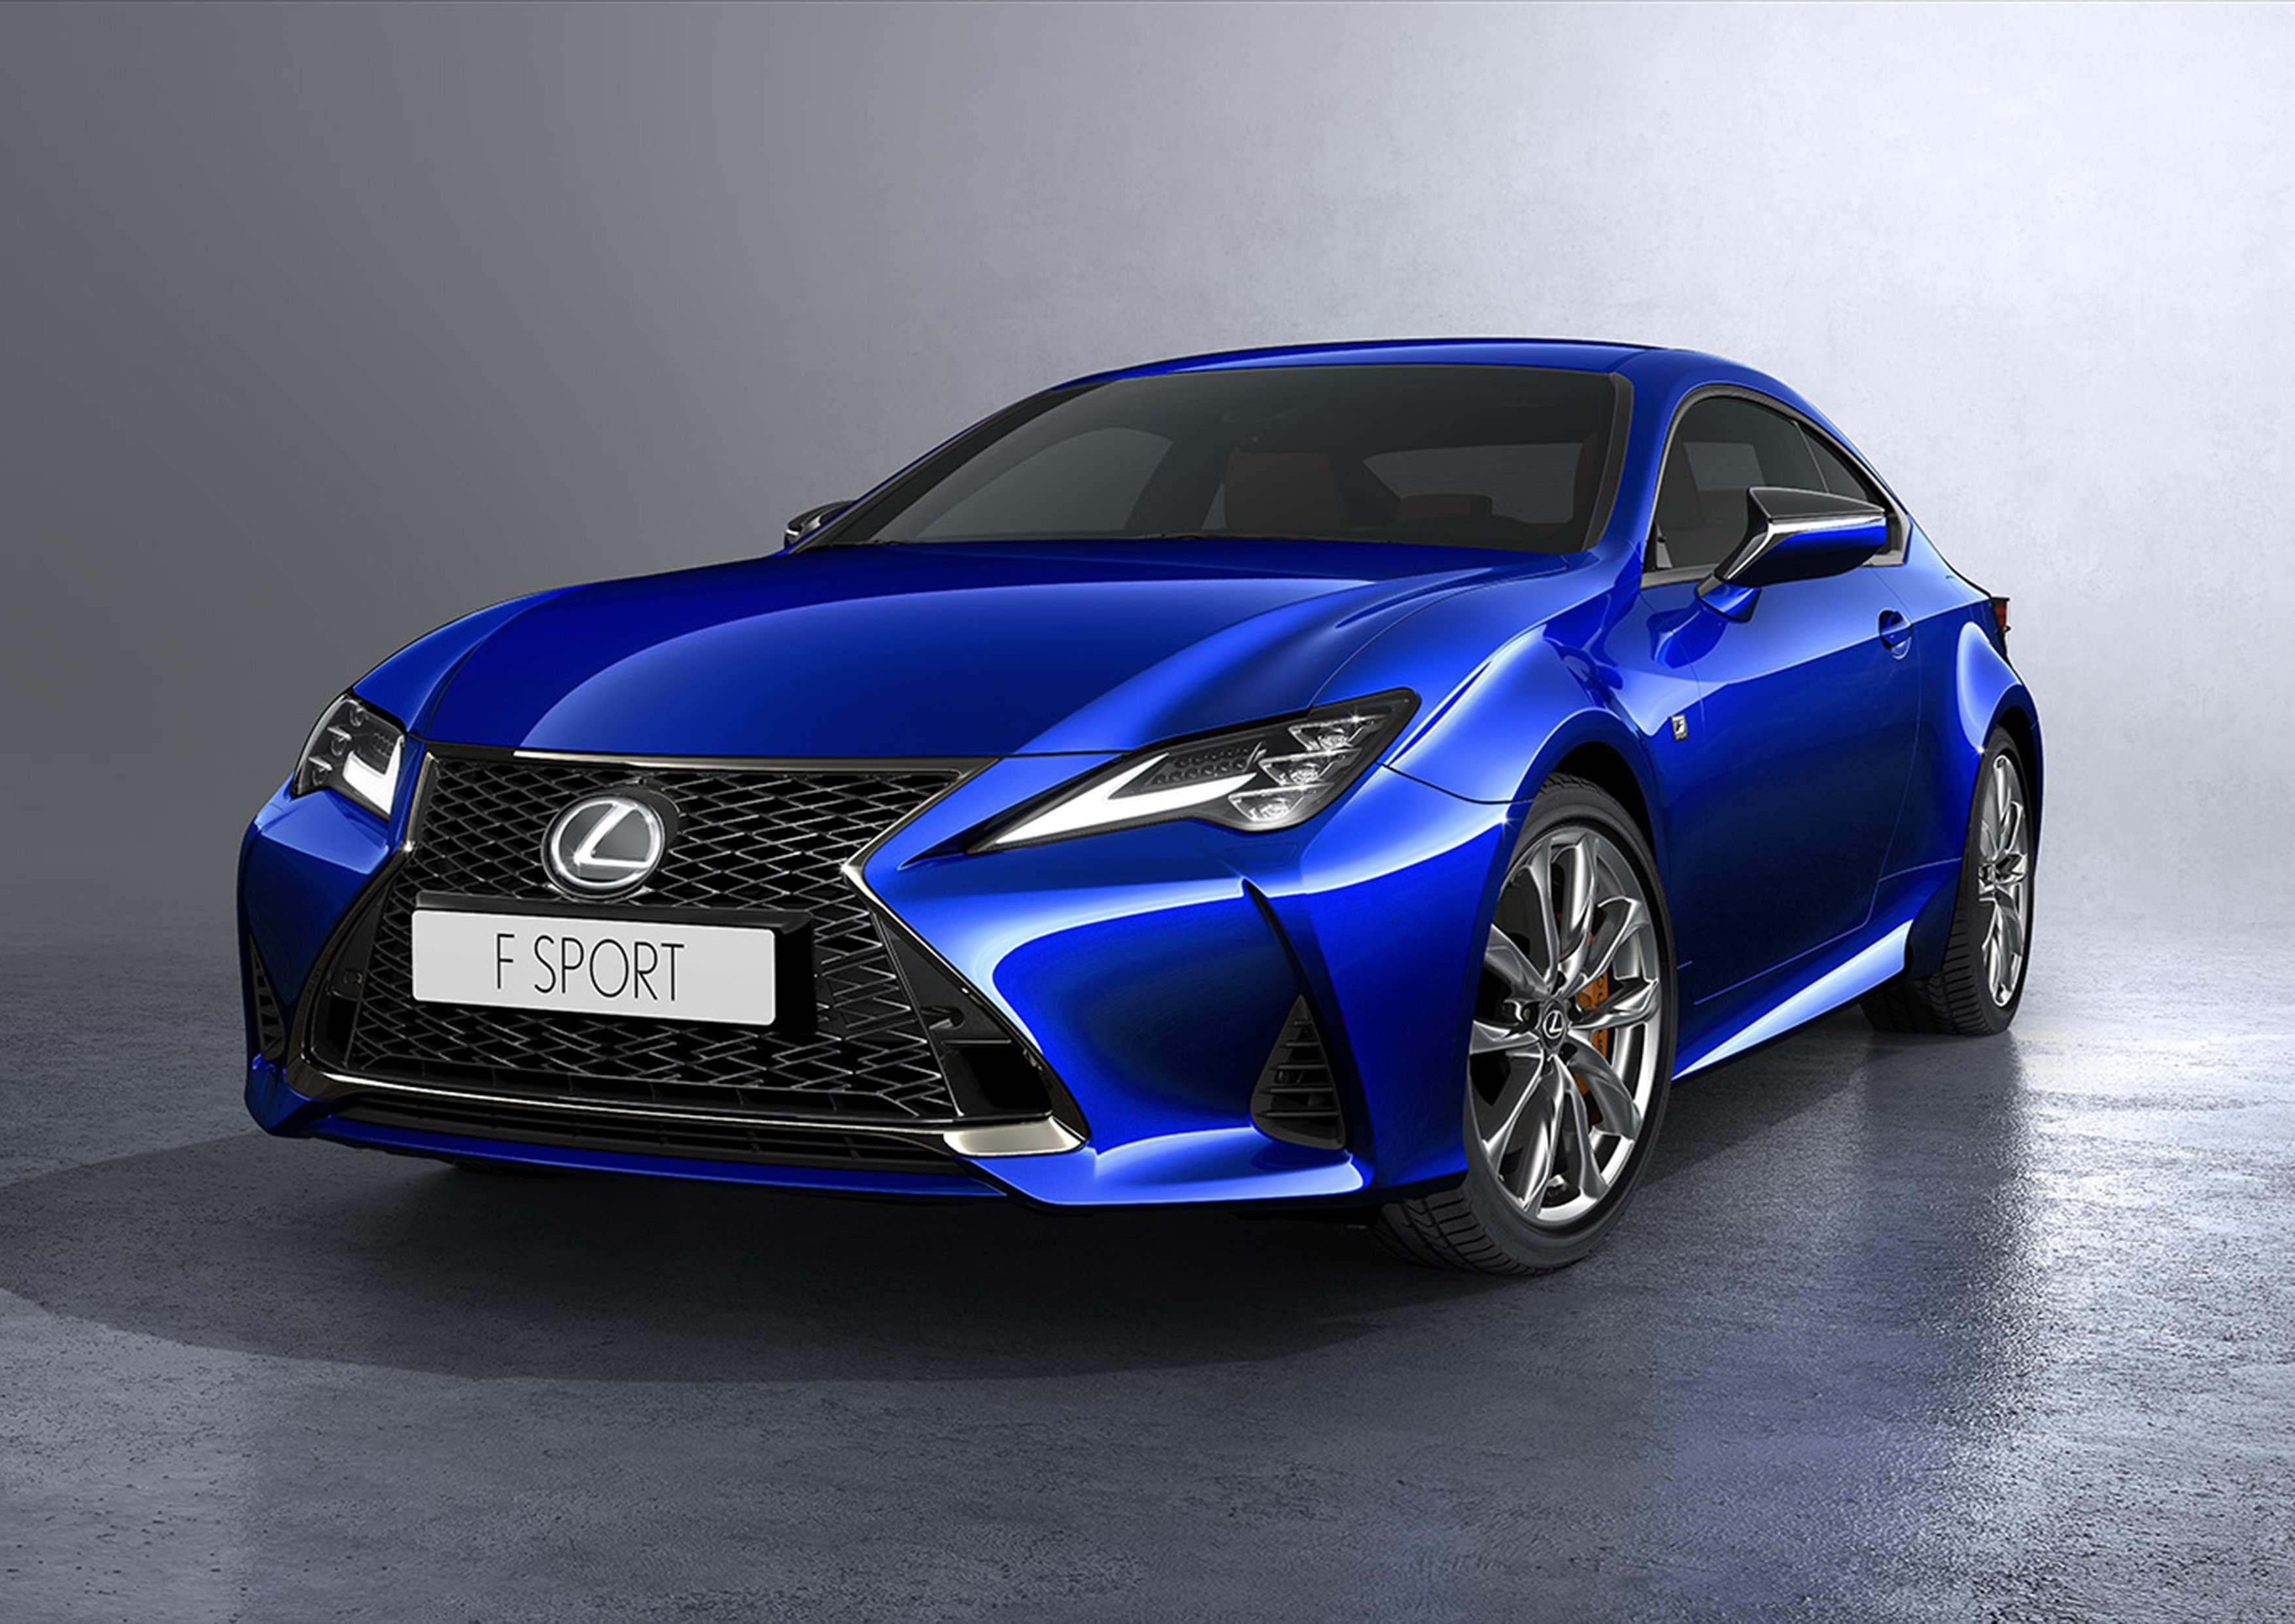 38 All New 2020 Lexus Rcf Prices with 2020 Lexus Rcf